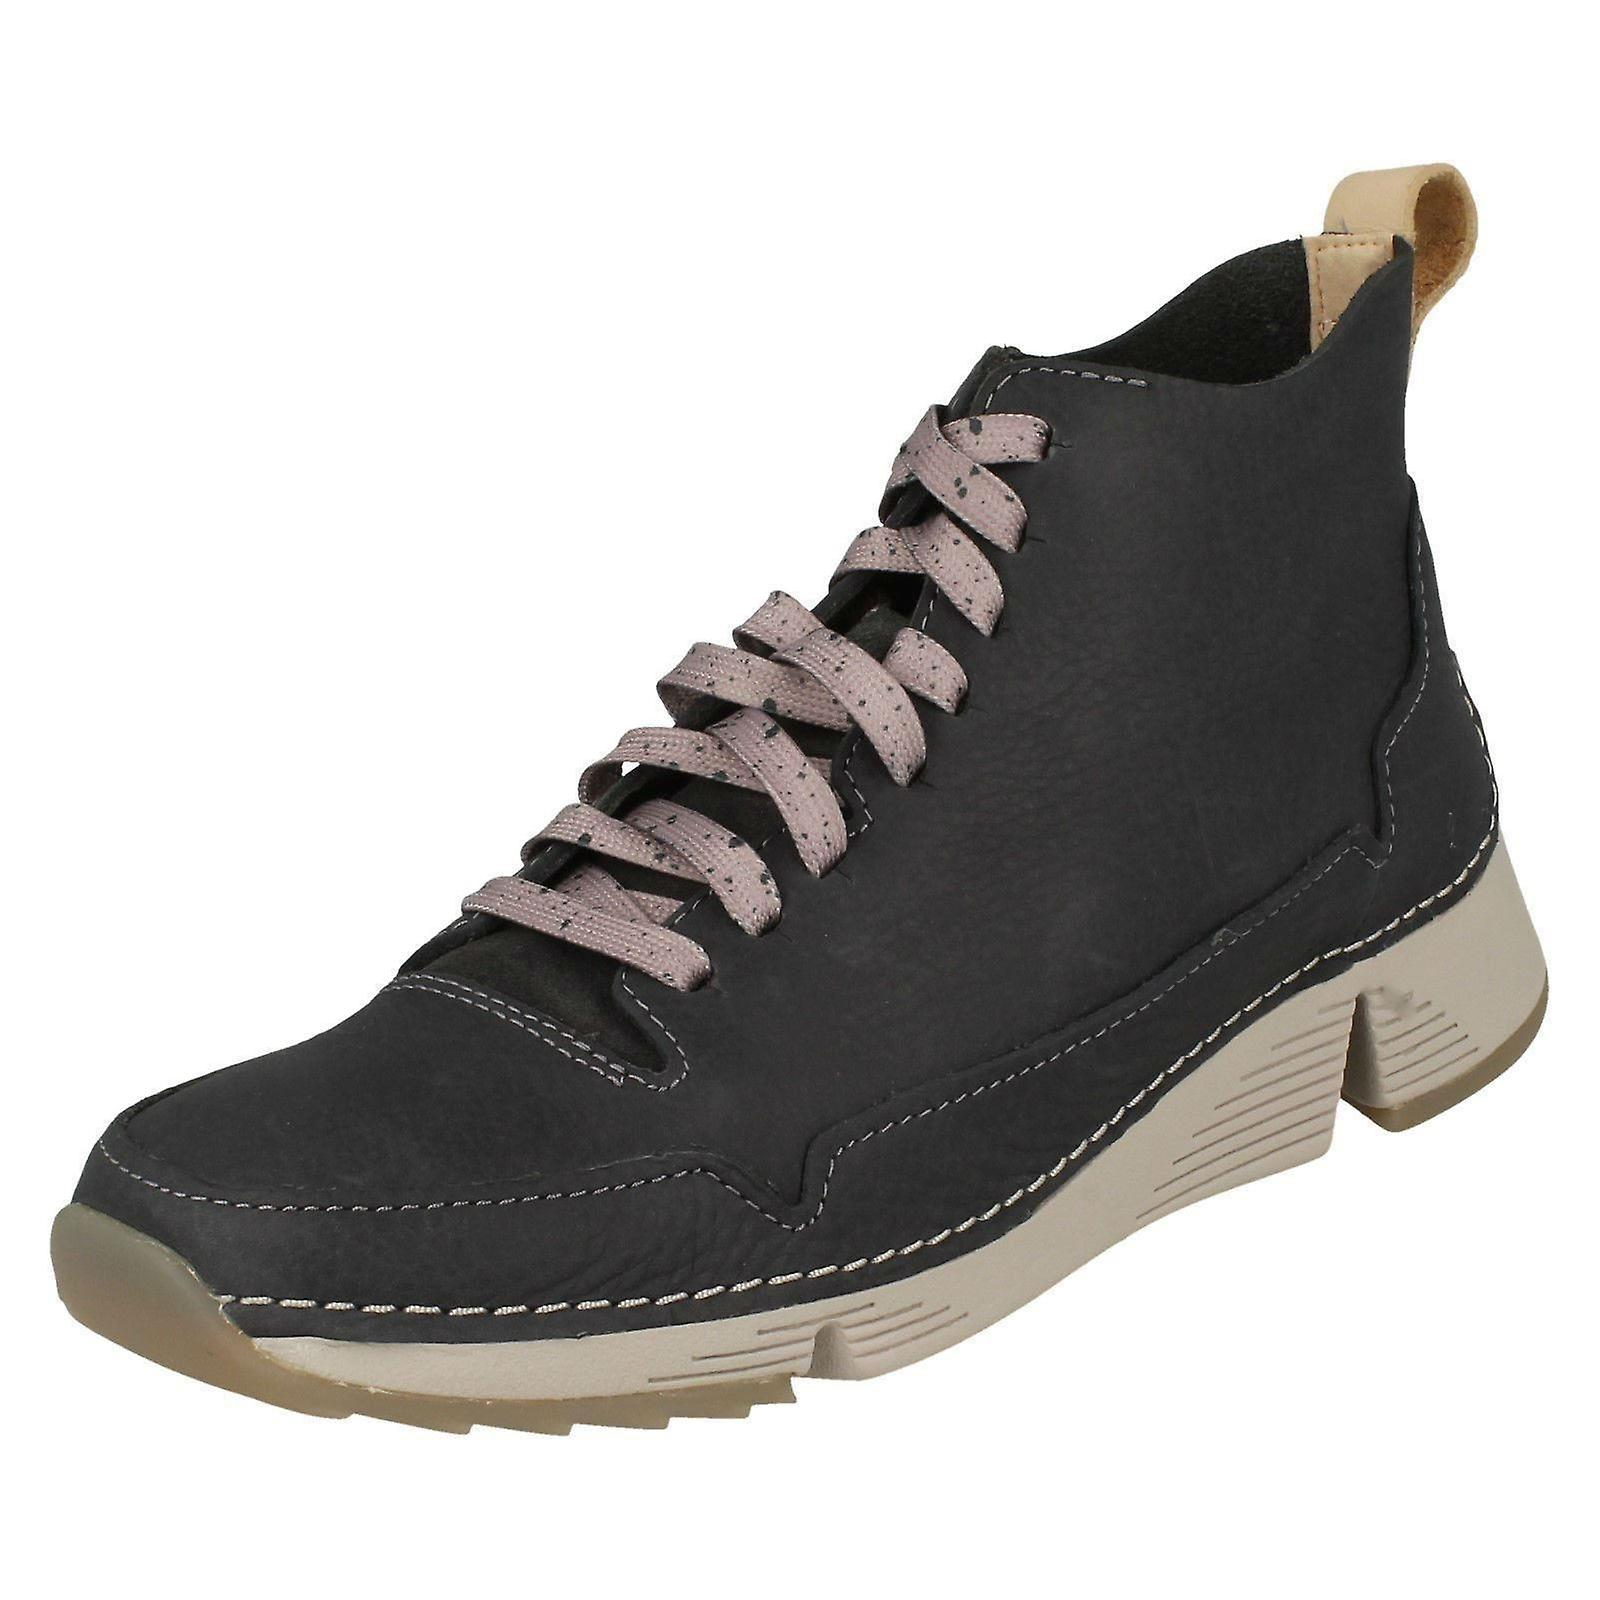 Ladies Clarks Lace Up Sporty Ankle Boot Tri Free 47G89